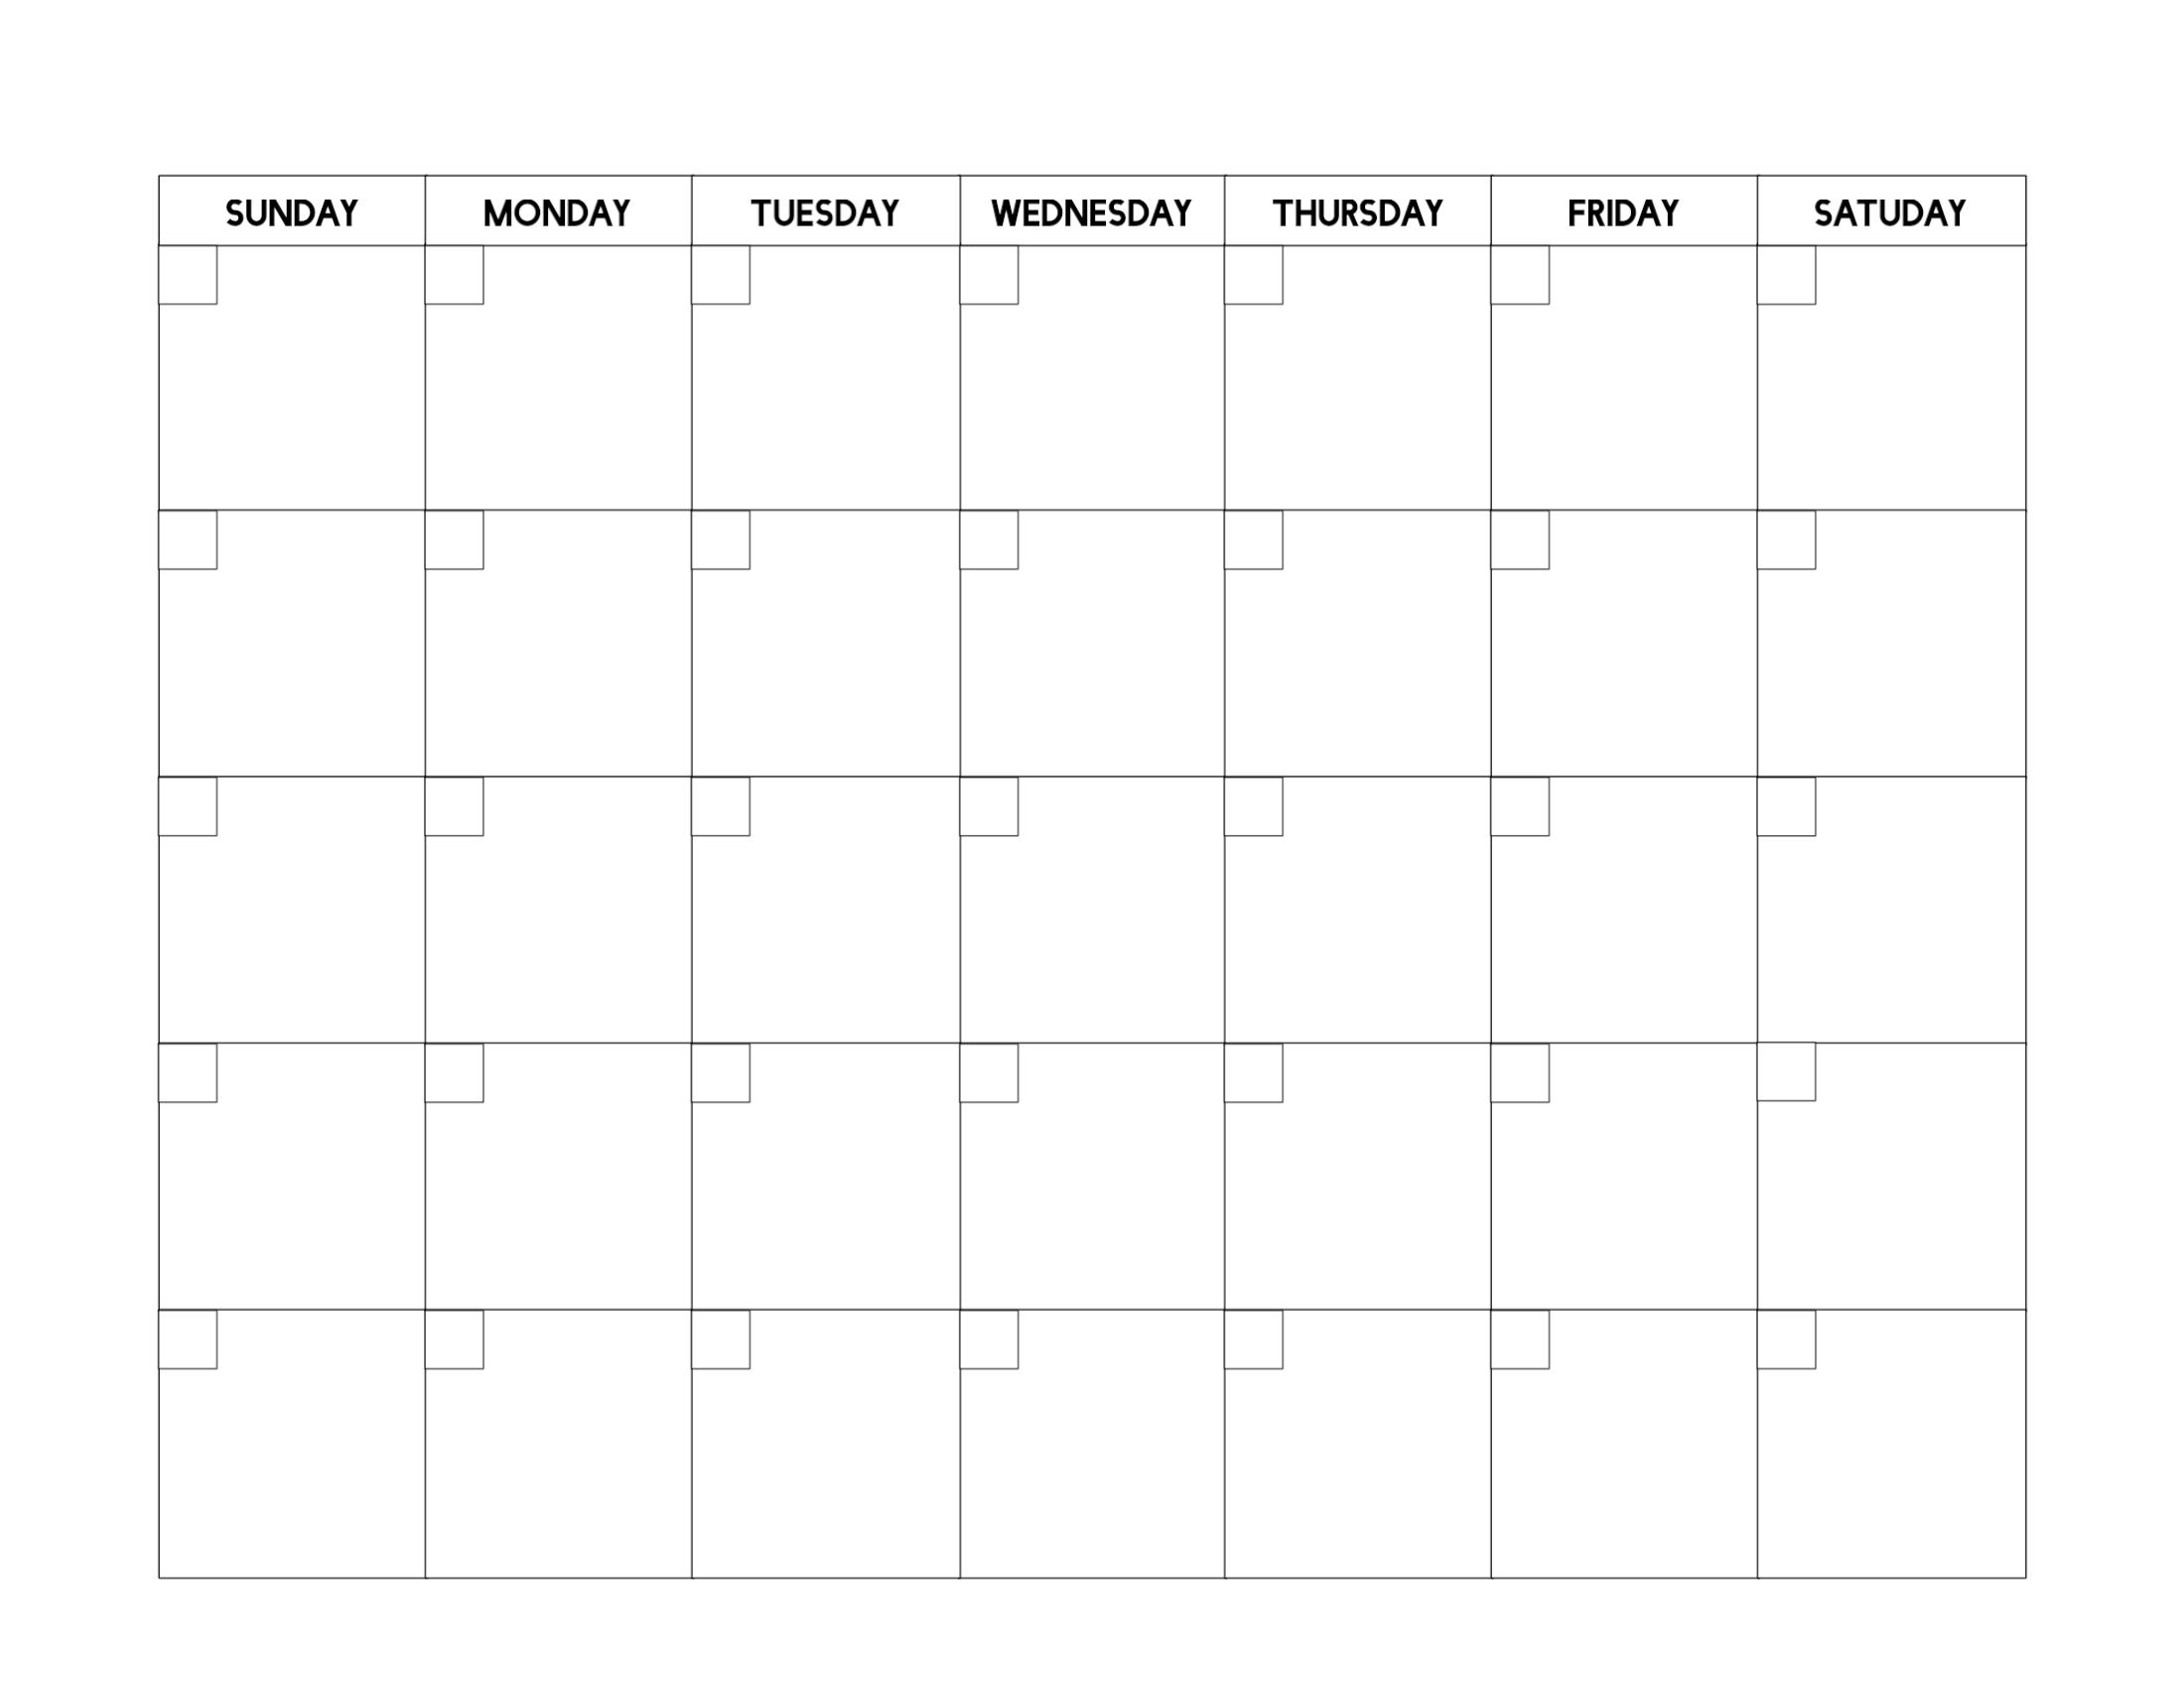 Calendar Fill In Templates   Calendar Template Printable Calendars To Fill In And Print